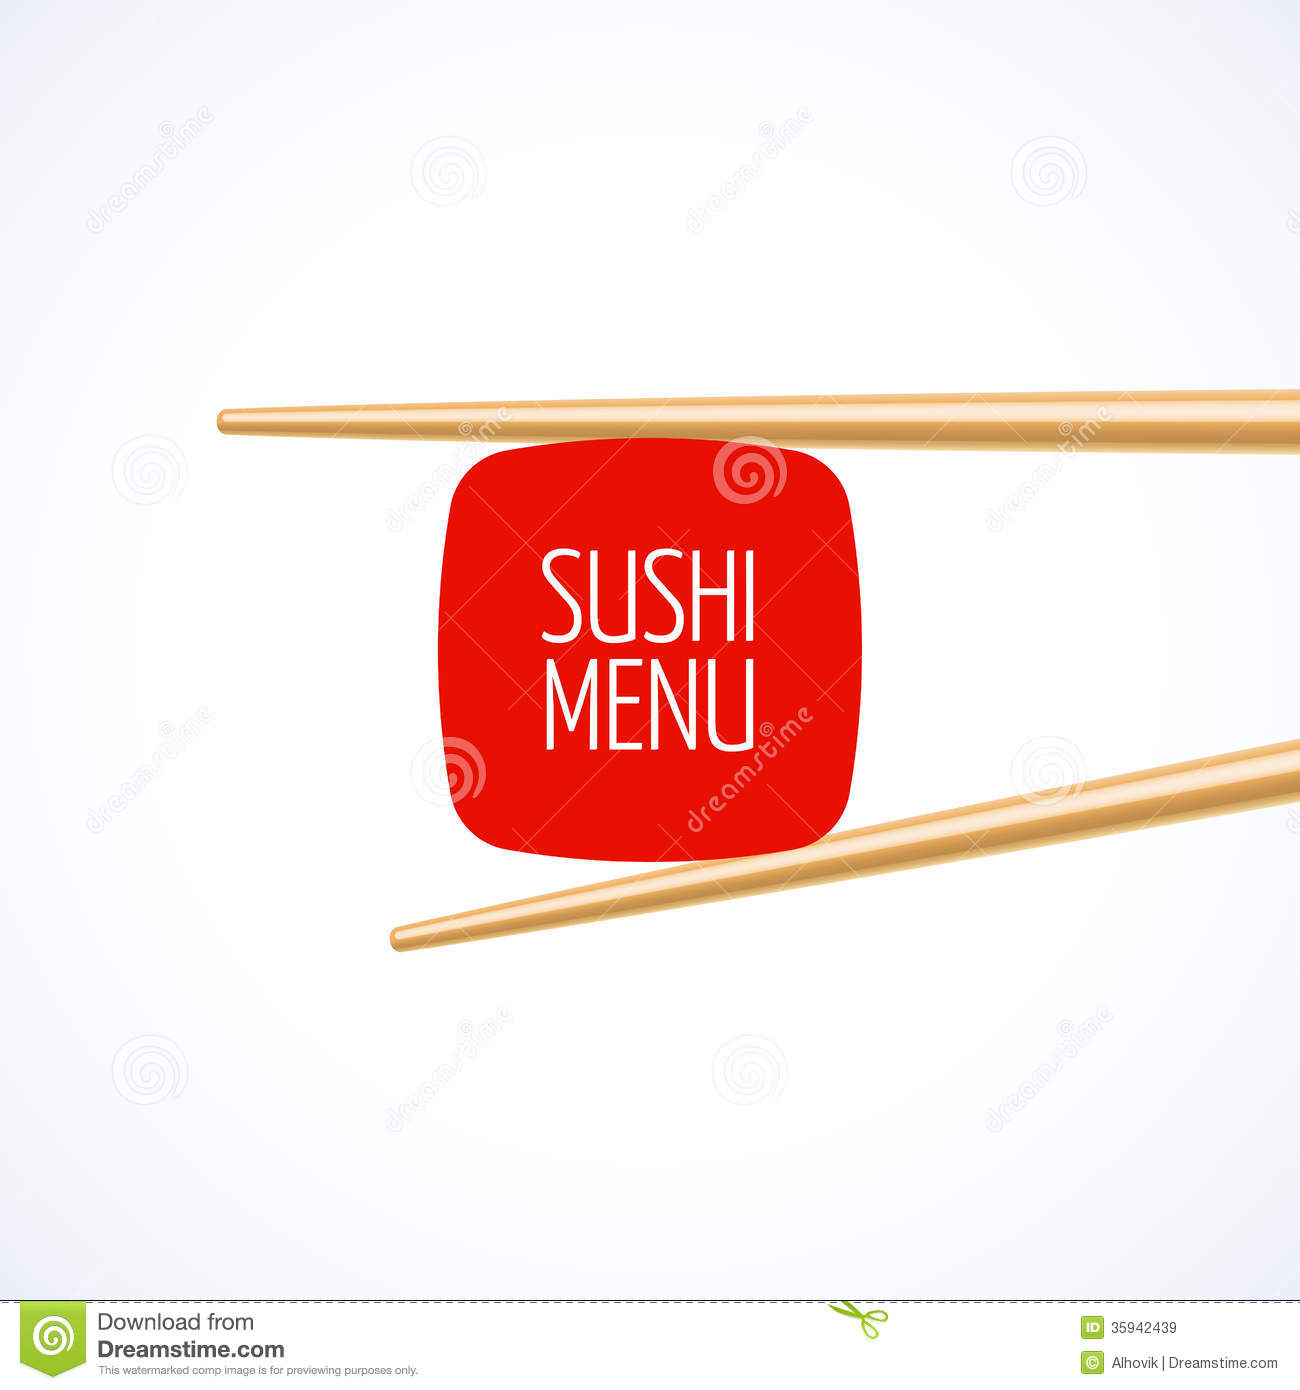 Welcome to Sushi King Japanese Restaurant in Kendall Park